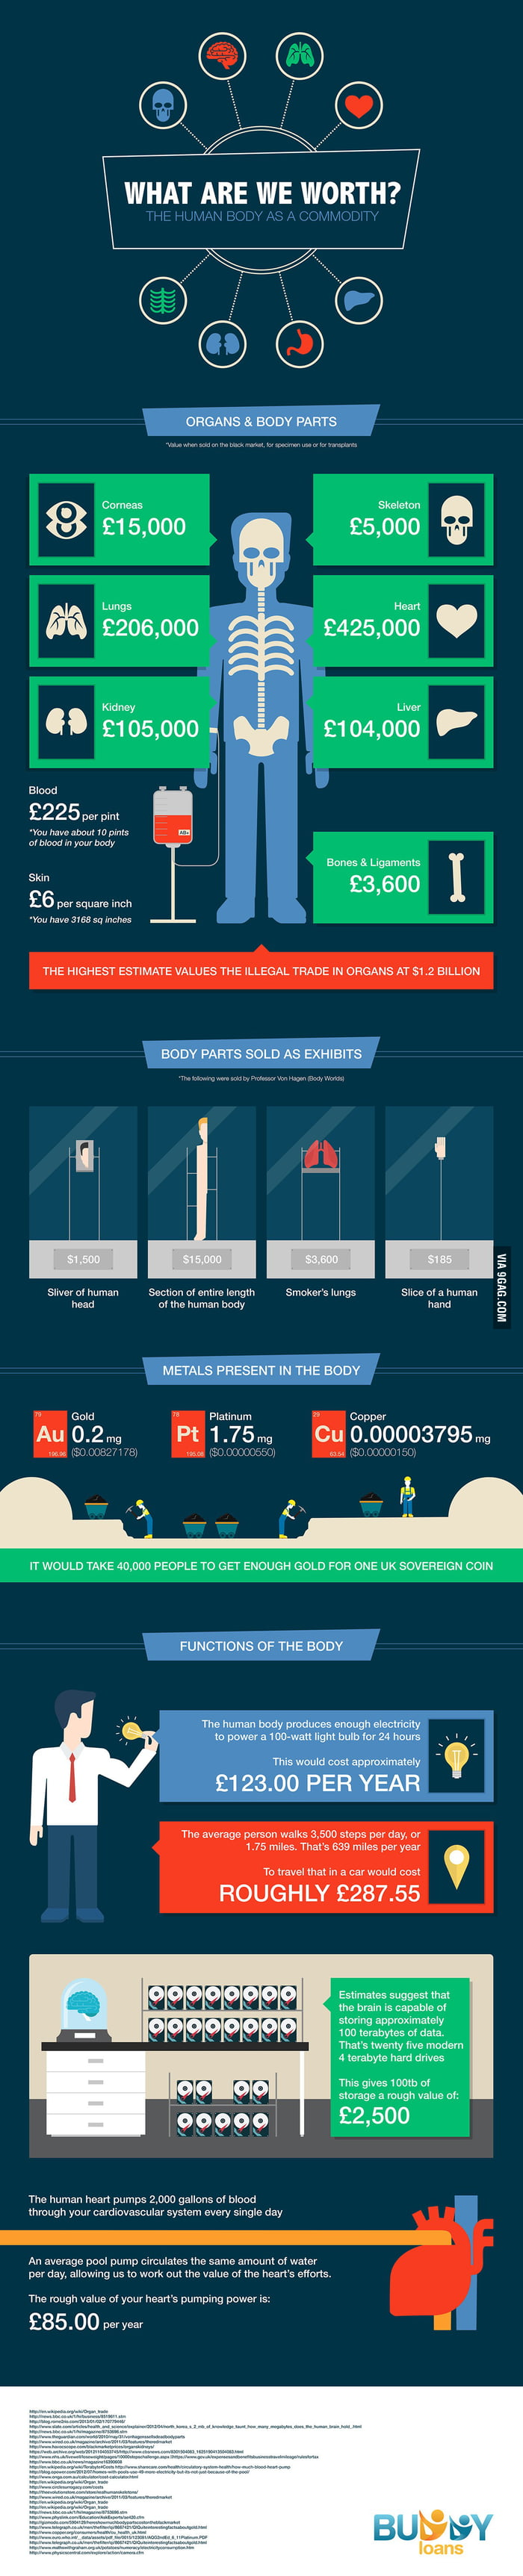 how much is the human body worth? - 9gag, Muscles